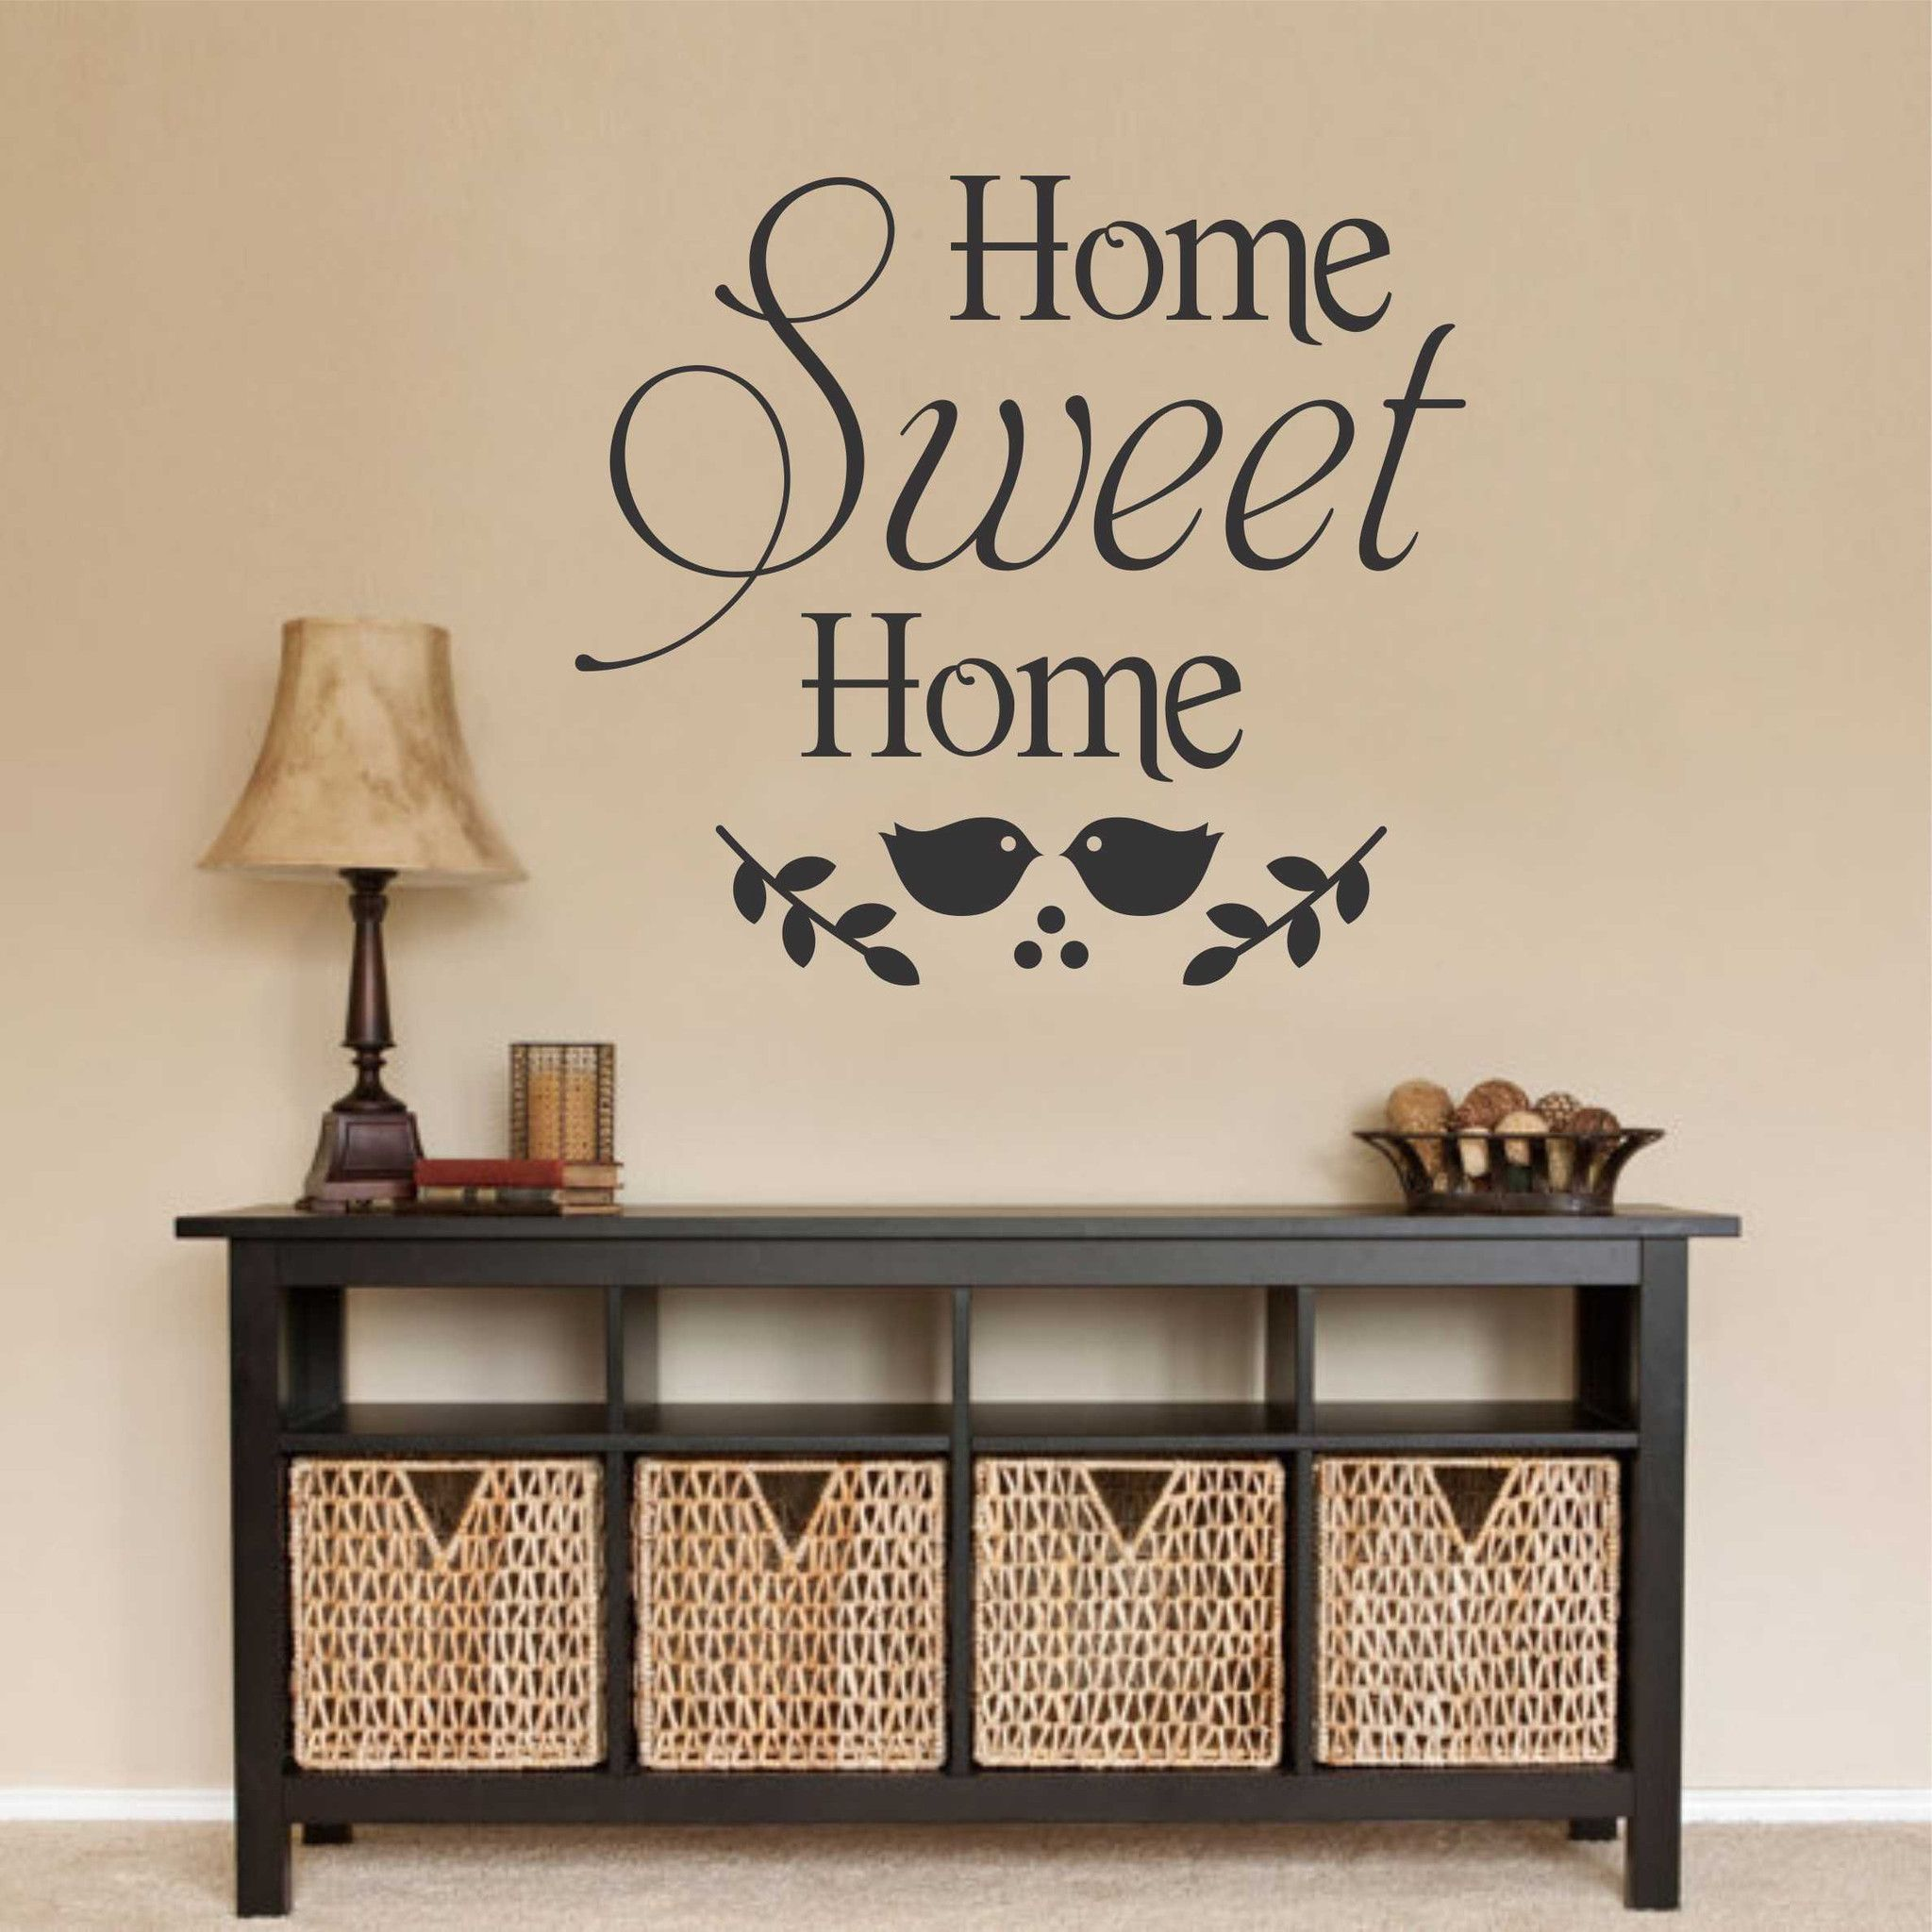 Wall Decal Home Sweet Home Love Birds Family Vinyl Lettering